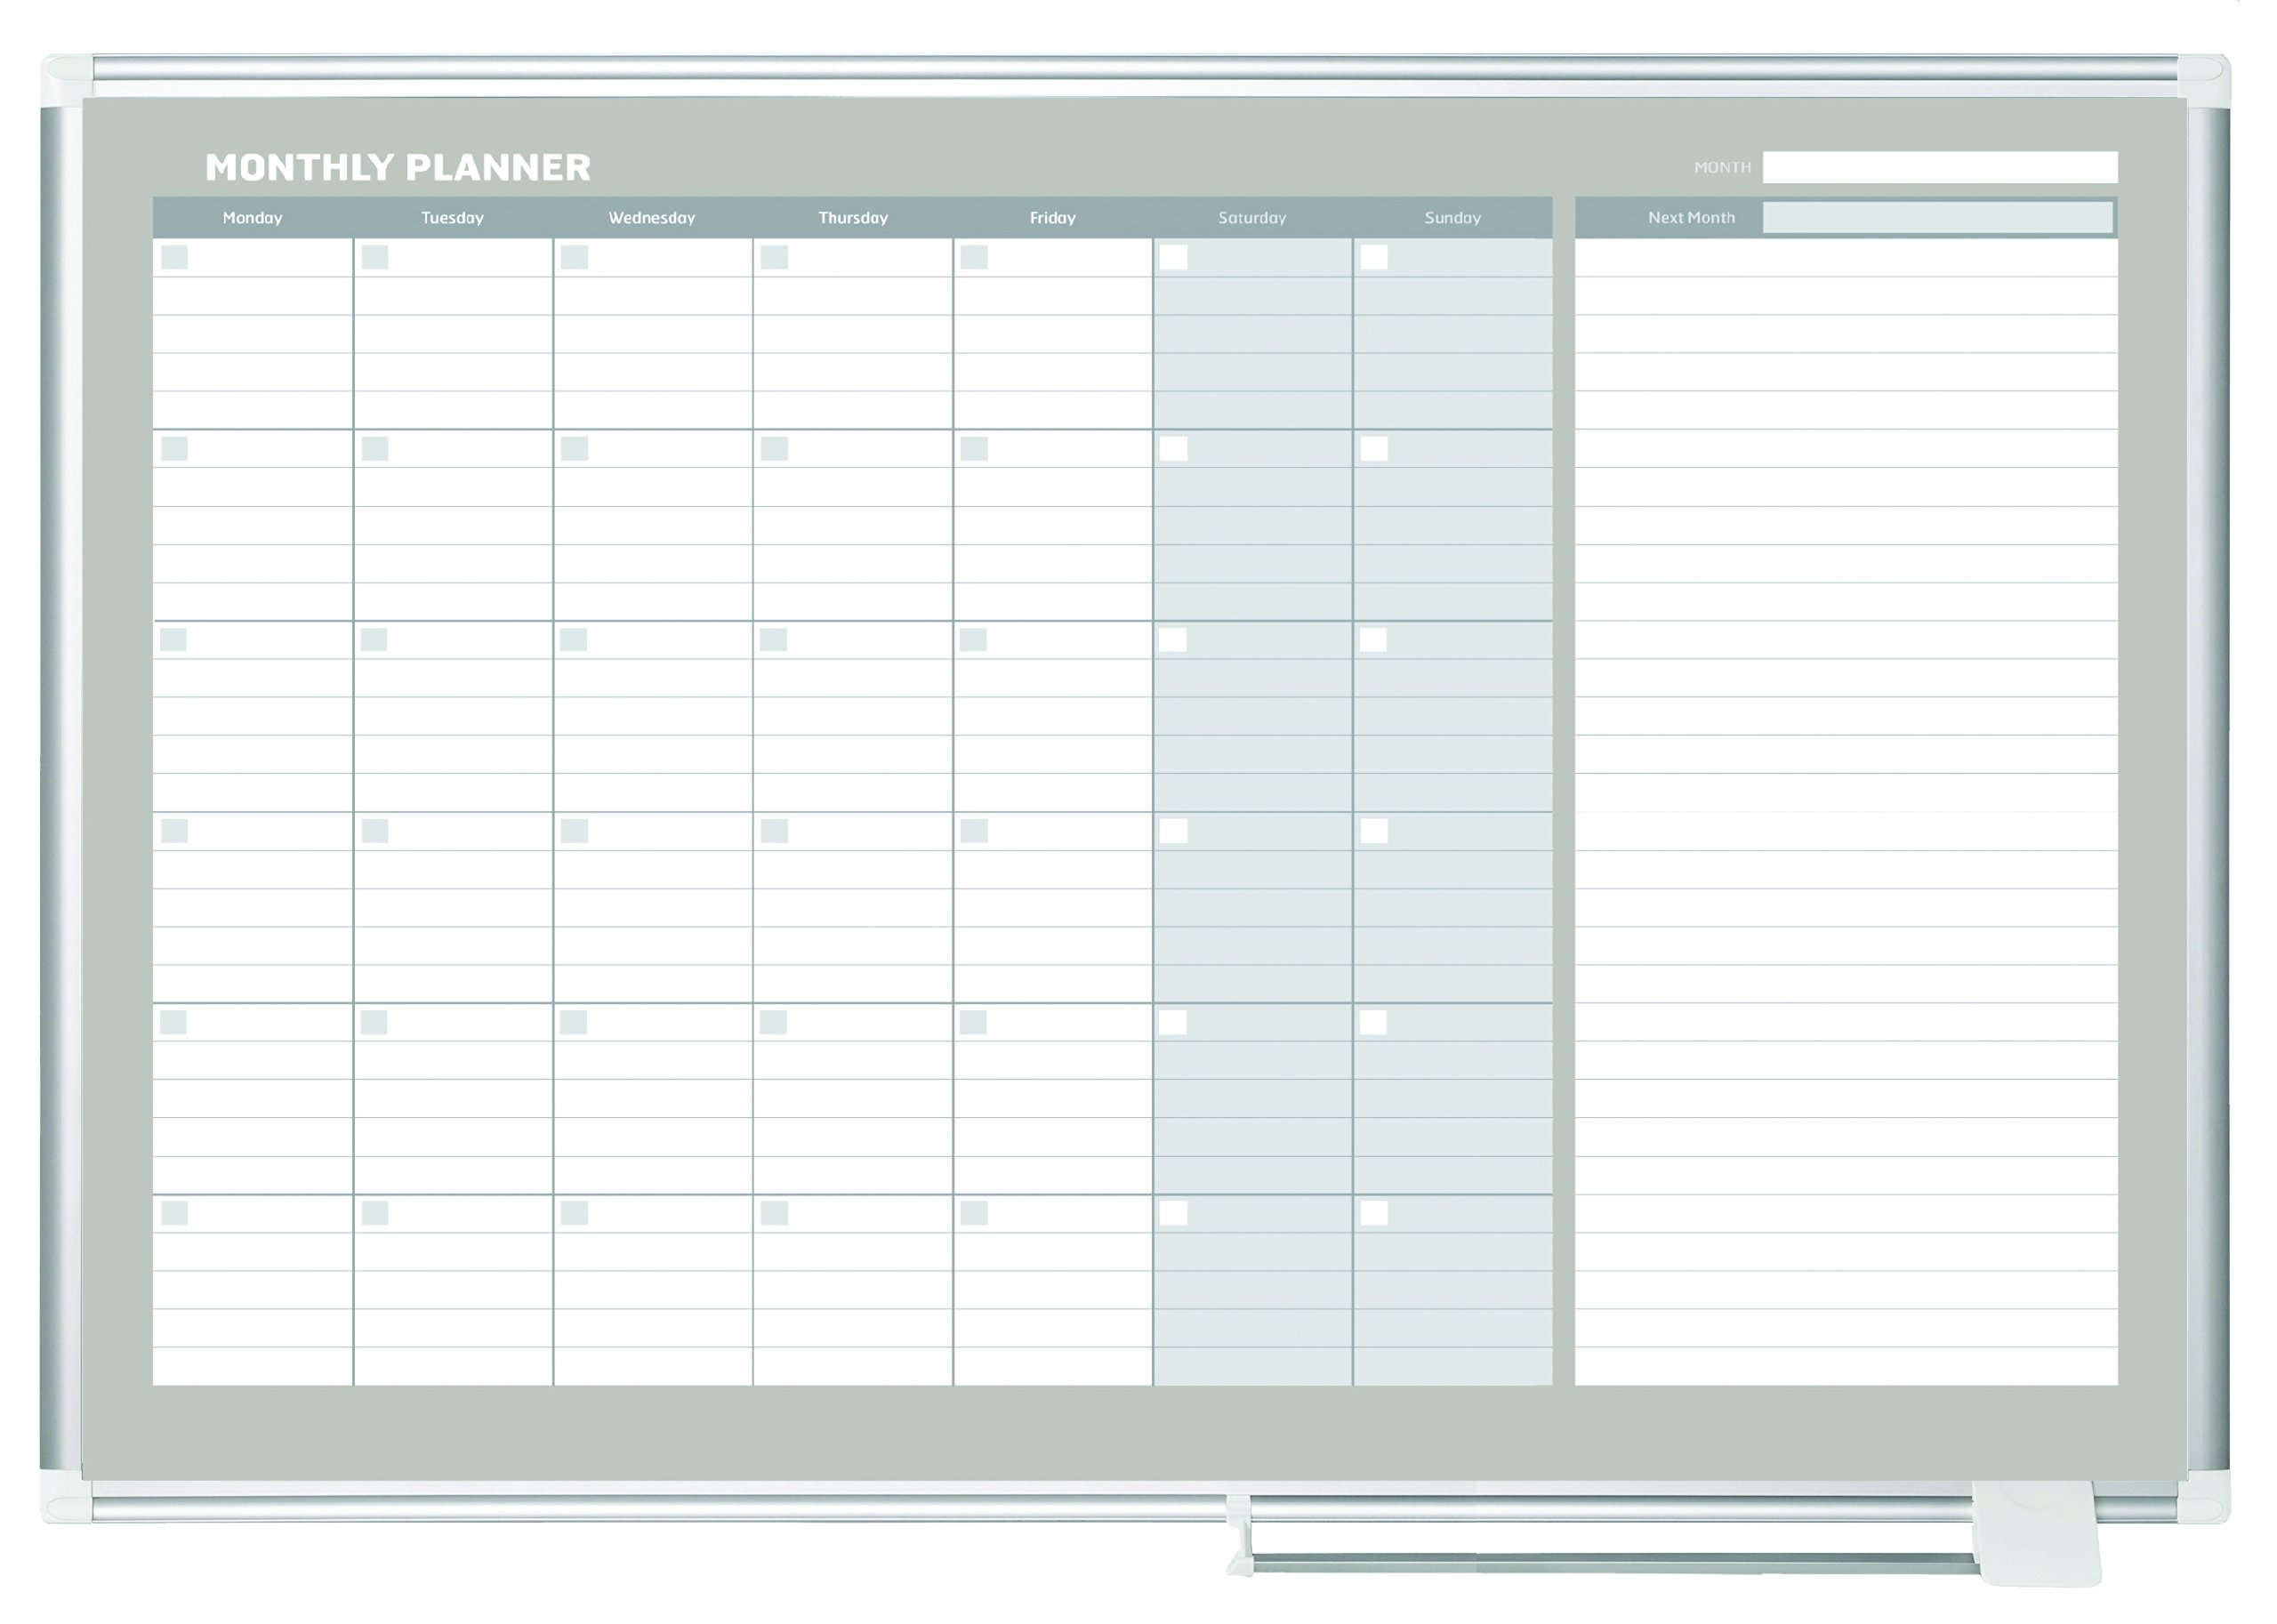 MasterVision Planning Board Magnetic Dry Erase, Monthly Calendar Board with Aluminum Frame, 36'' x 48''